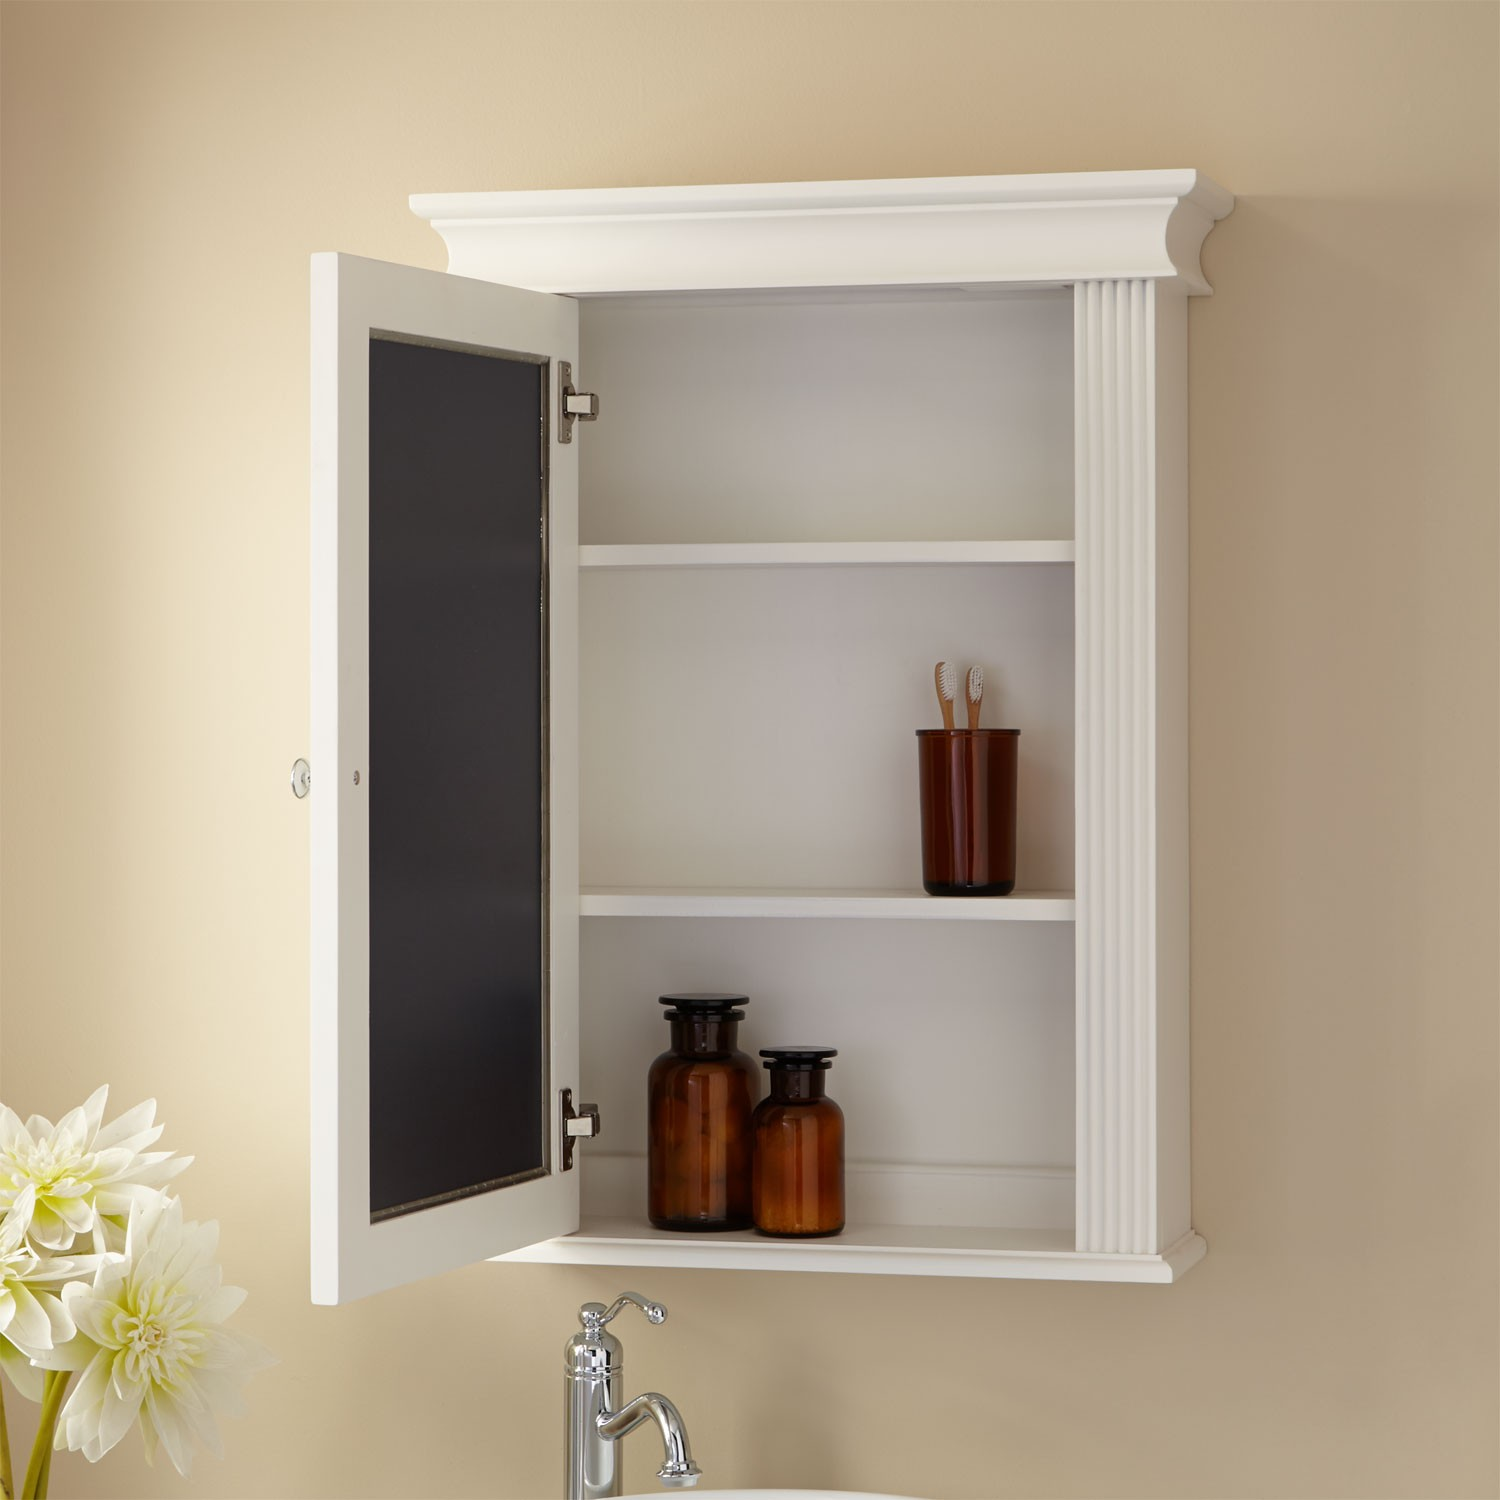 recessed bathroom medicine cabinet recessed medicine cabinet no mirror homesfeed 20094